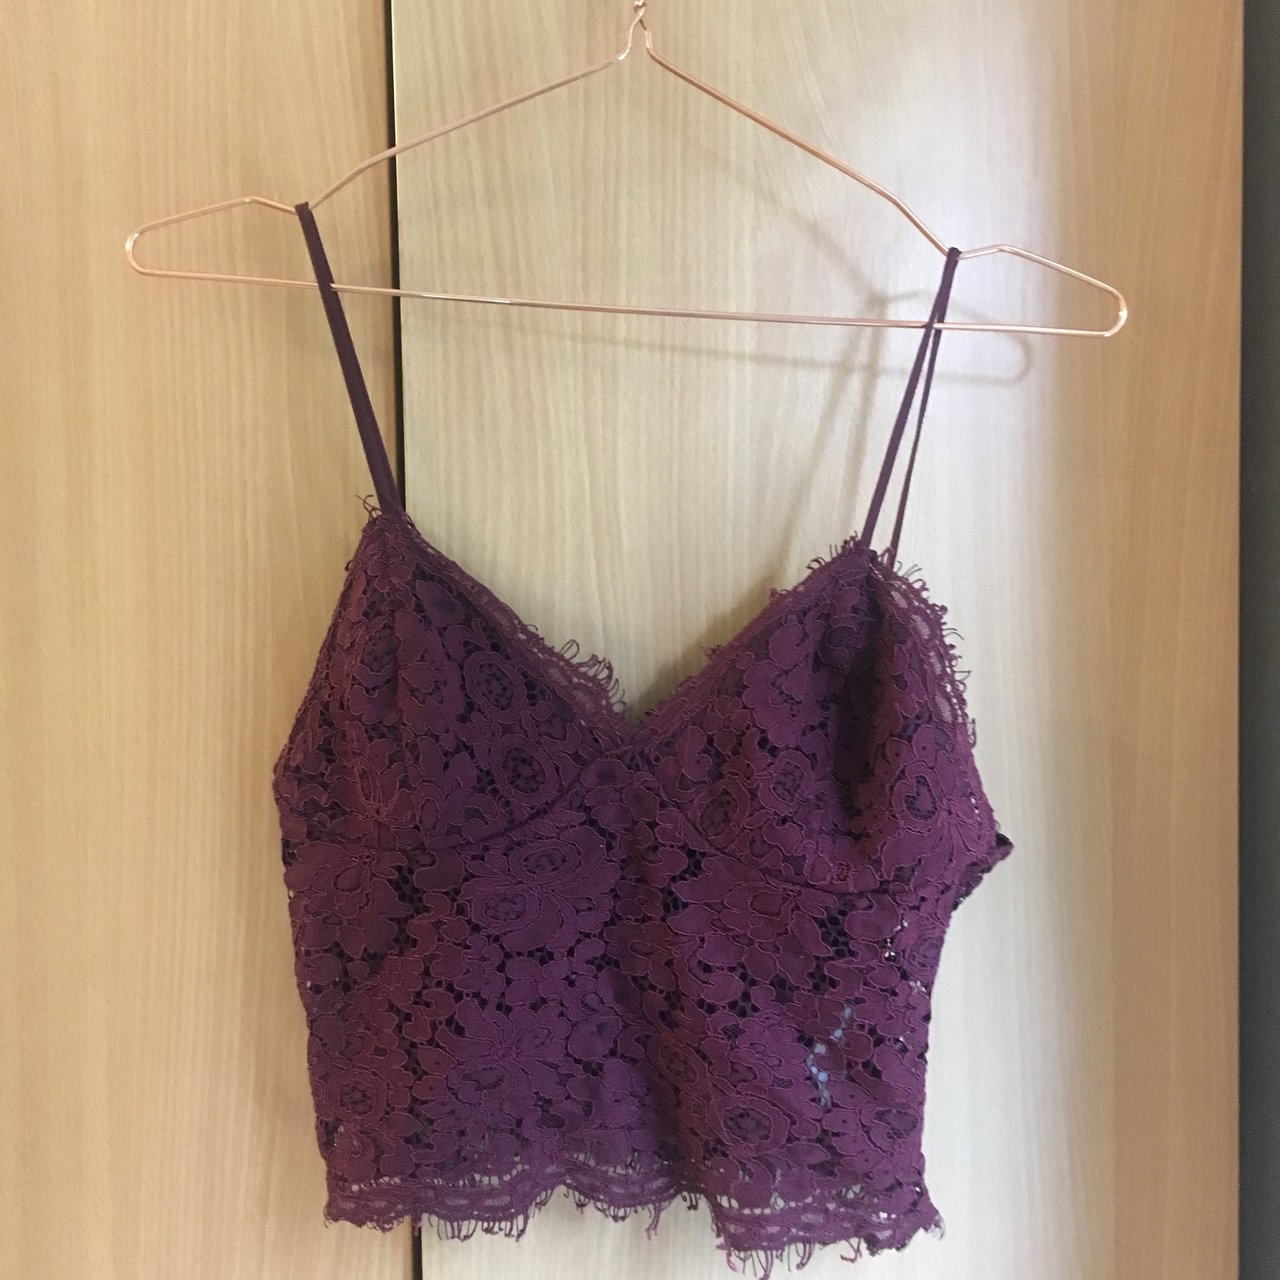 553ac9d9aa4 Primark lace bralette in burgundy. •Love this but just it - Depop